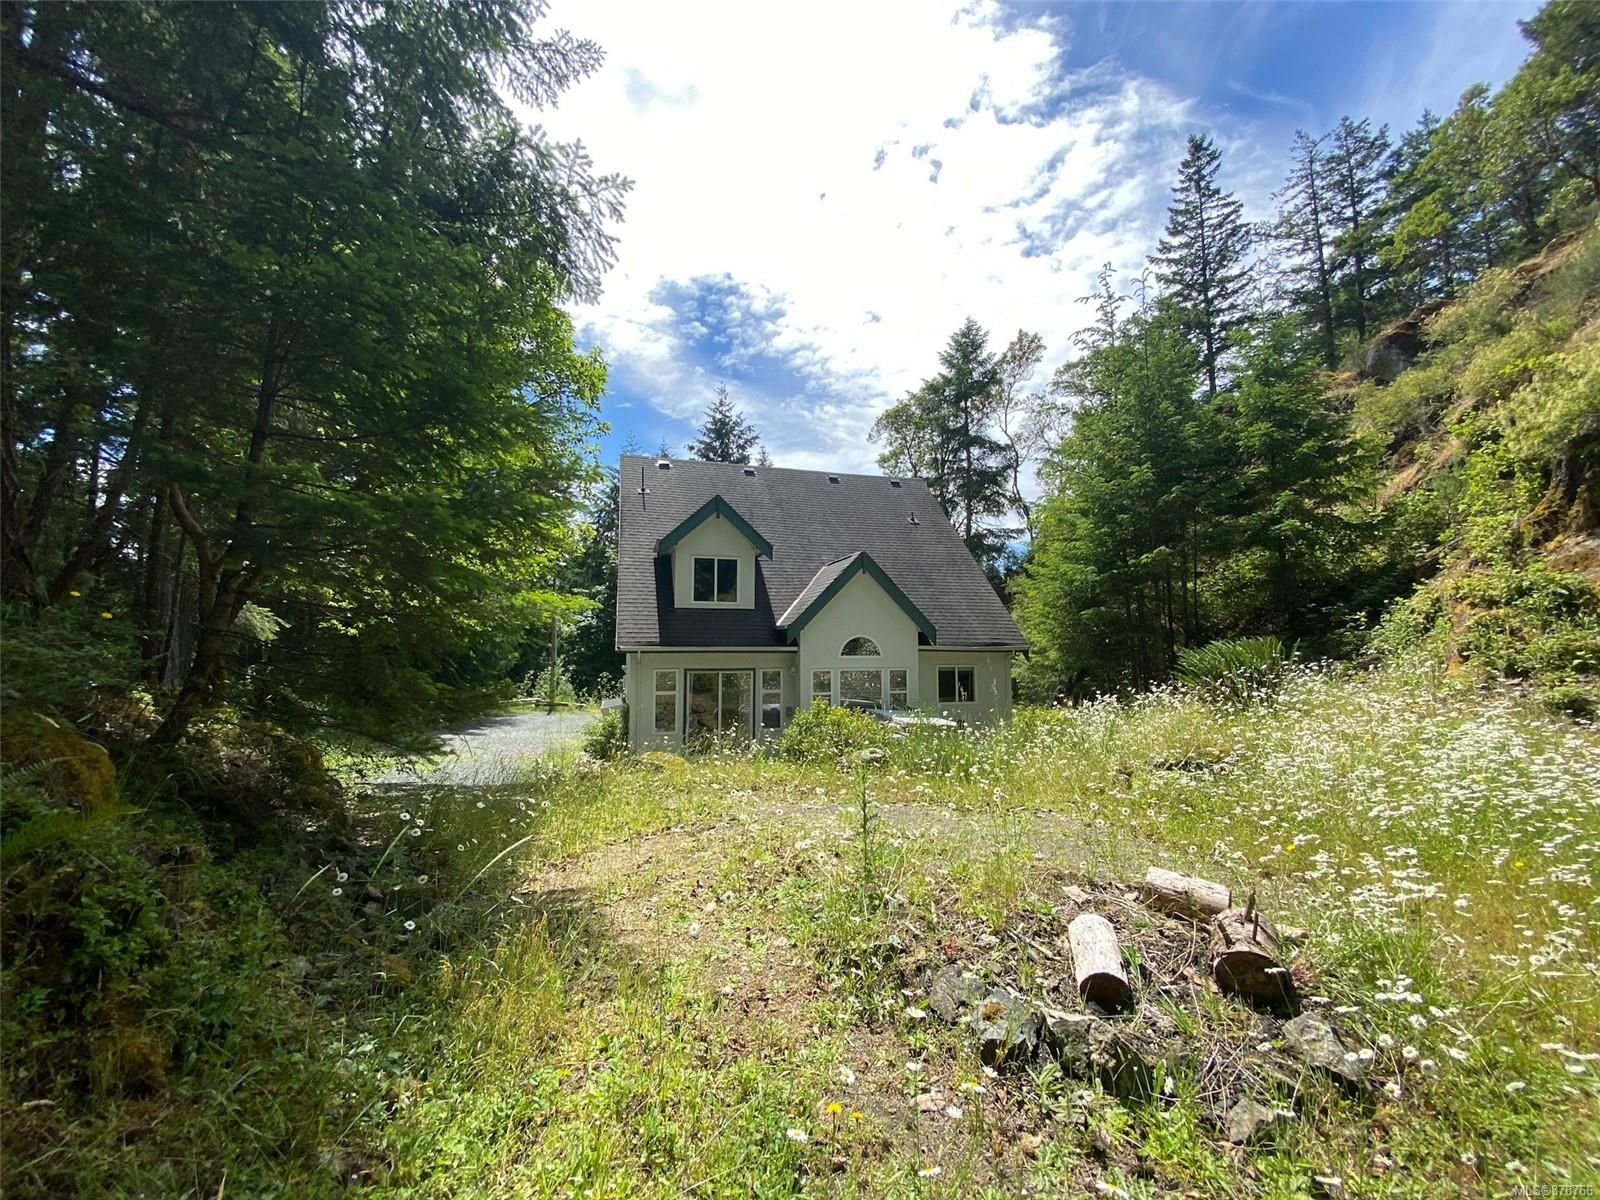 Main Photo: 3463 Yorkshire Pl in : La Humpback House for sale (Langford)  : MLS®# 878766